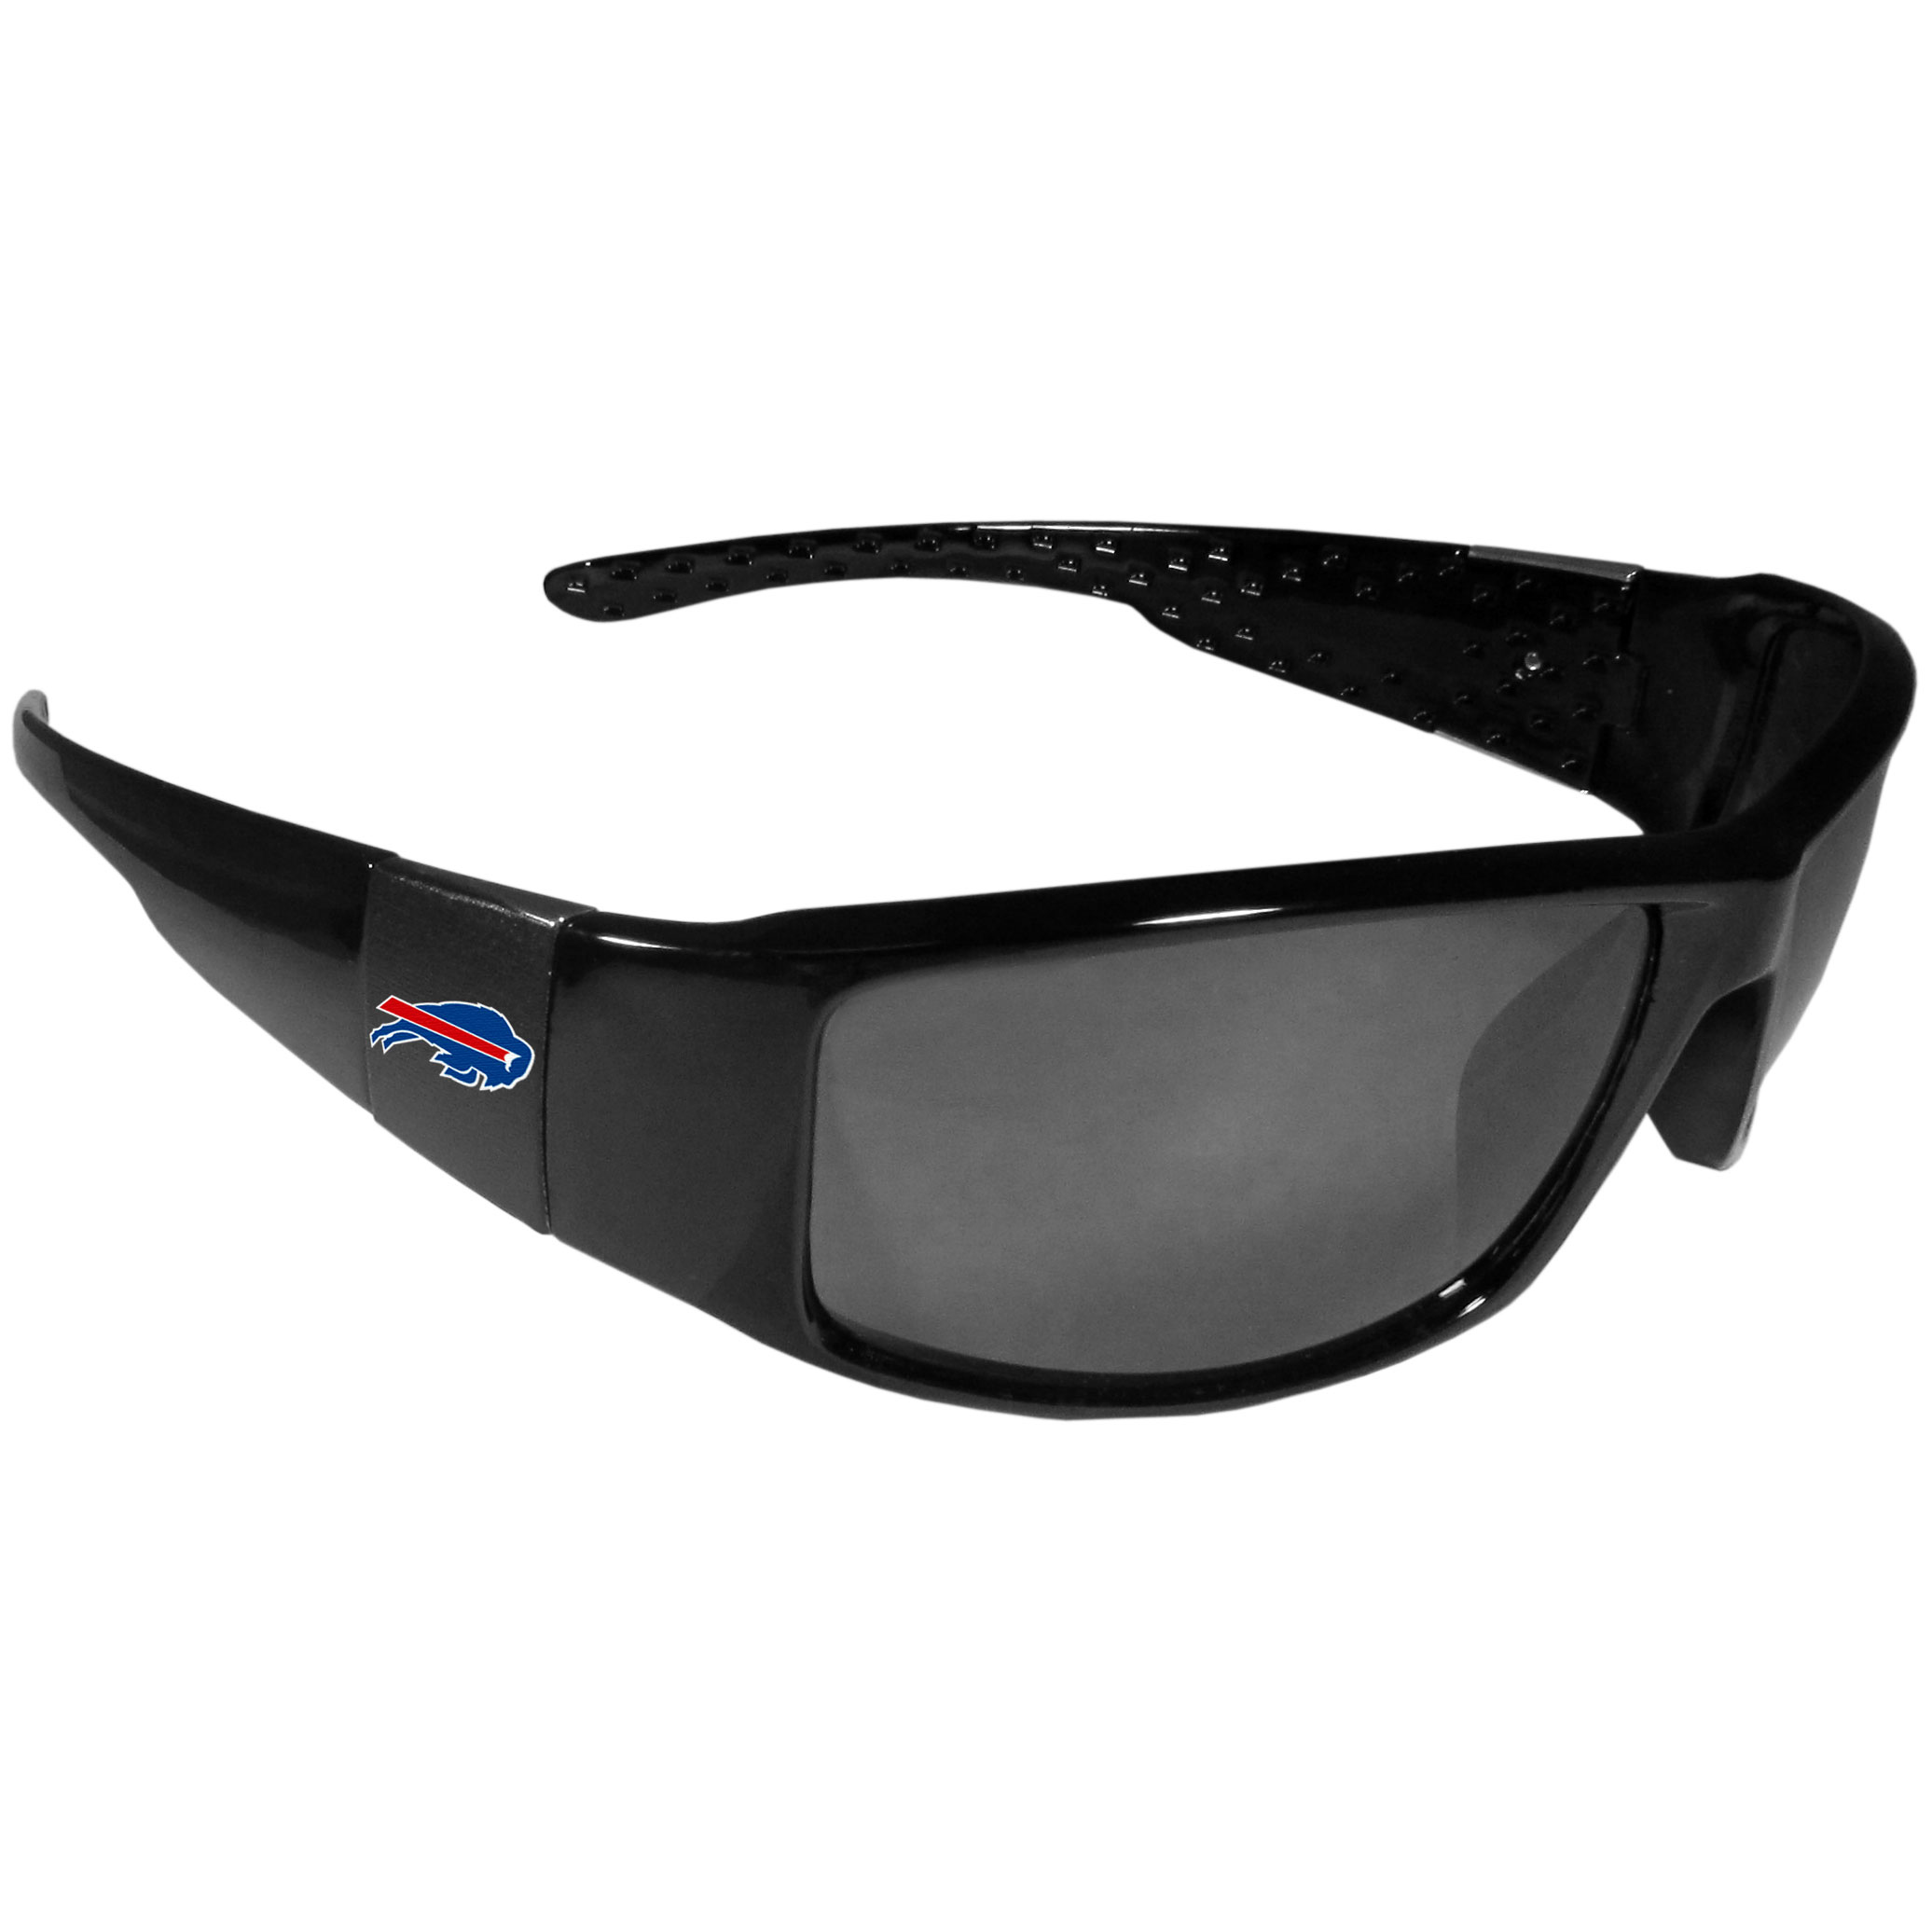 Buffalo Bills Black Wrap Sunglasses - These designer inspired frames have a sleek look in all black with  Buffalo Bills shields on each arm with a printed logo. The shades are perfect for any outdoor activity like; golfing, driving, hiking, fishing or cheering on the team at a tailgating event or at a home game day BBQ with a lens rating of 100% UVA/UVB for maximum UV protection. The high-quality frames are as durable as they are fashionable and with their classic look they are the perfect fan accessory that can be worn everyday for every occasion.